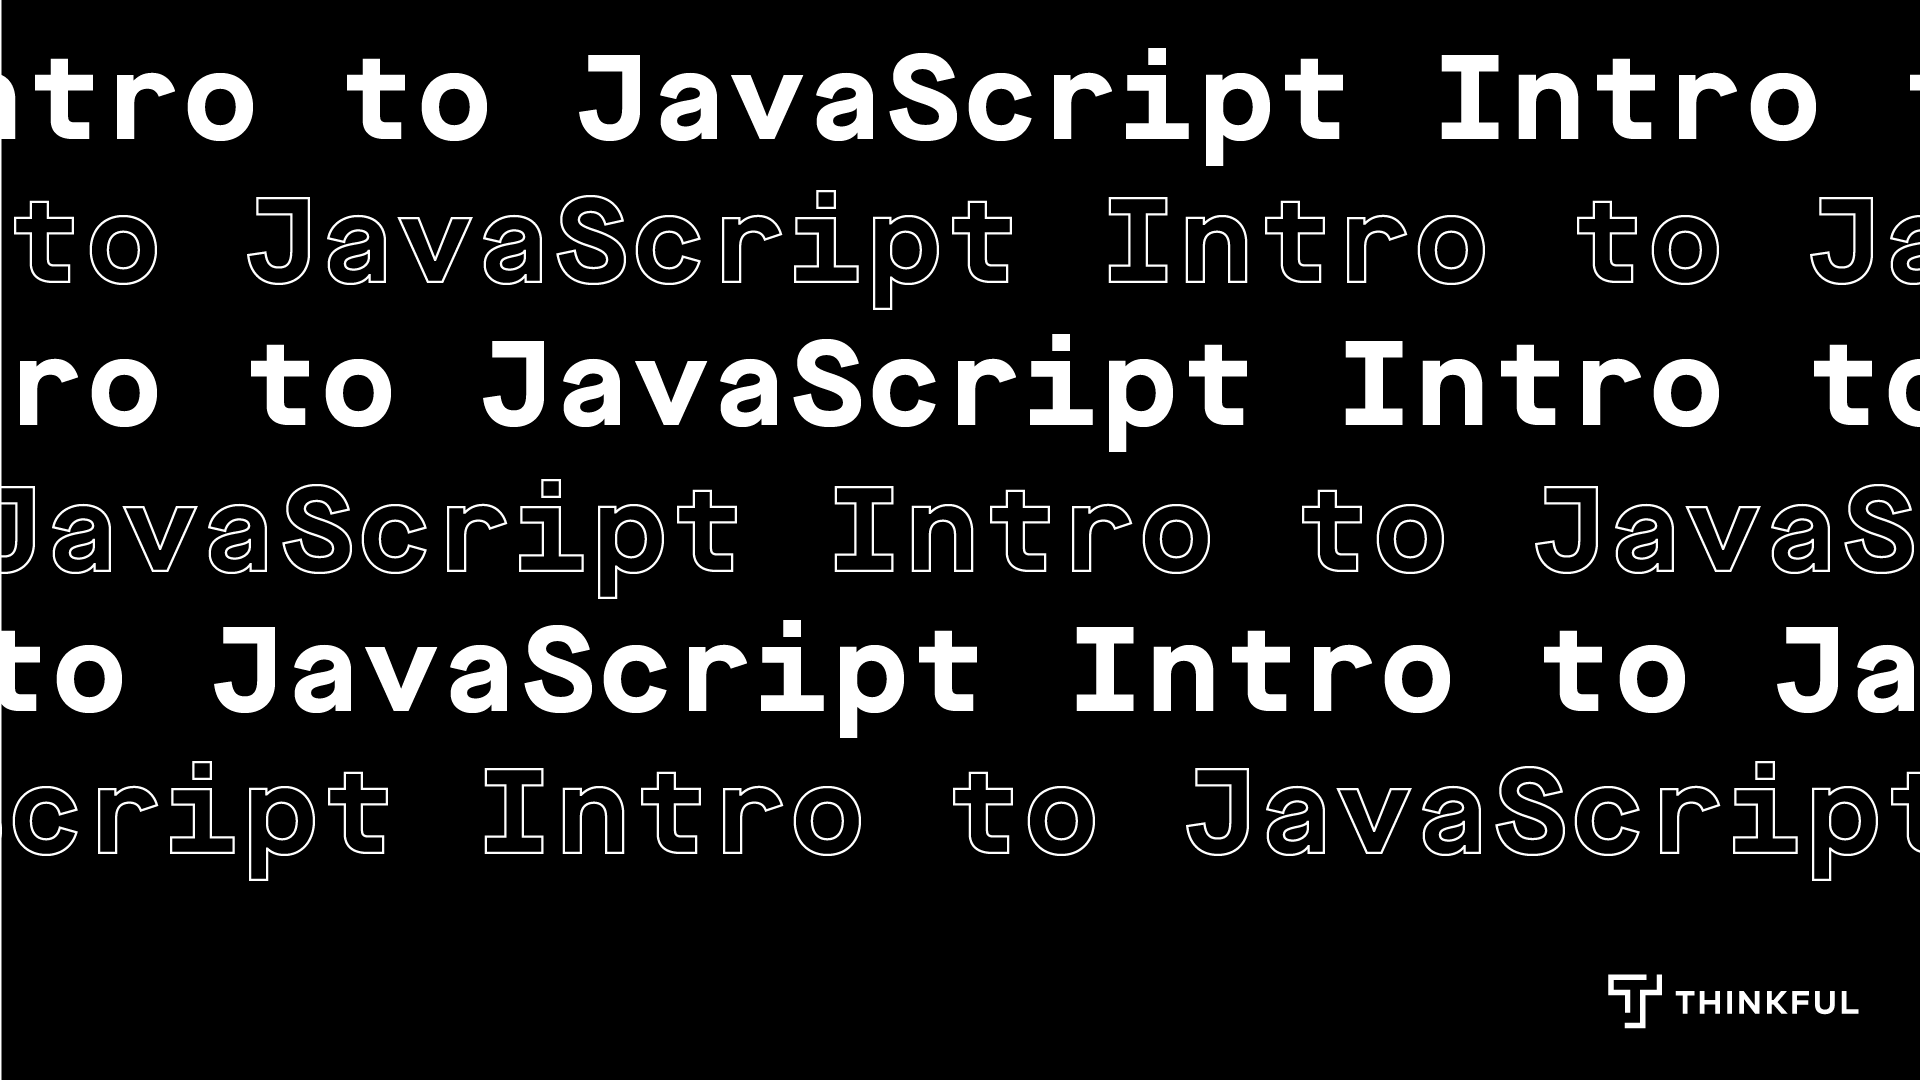 Intro to JavaScript: Build a Guessing Game